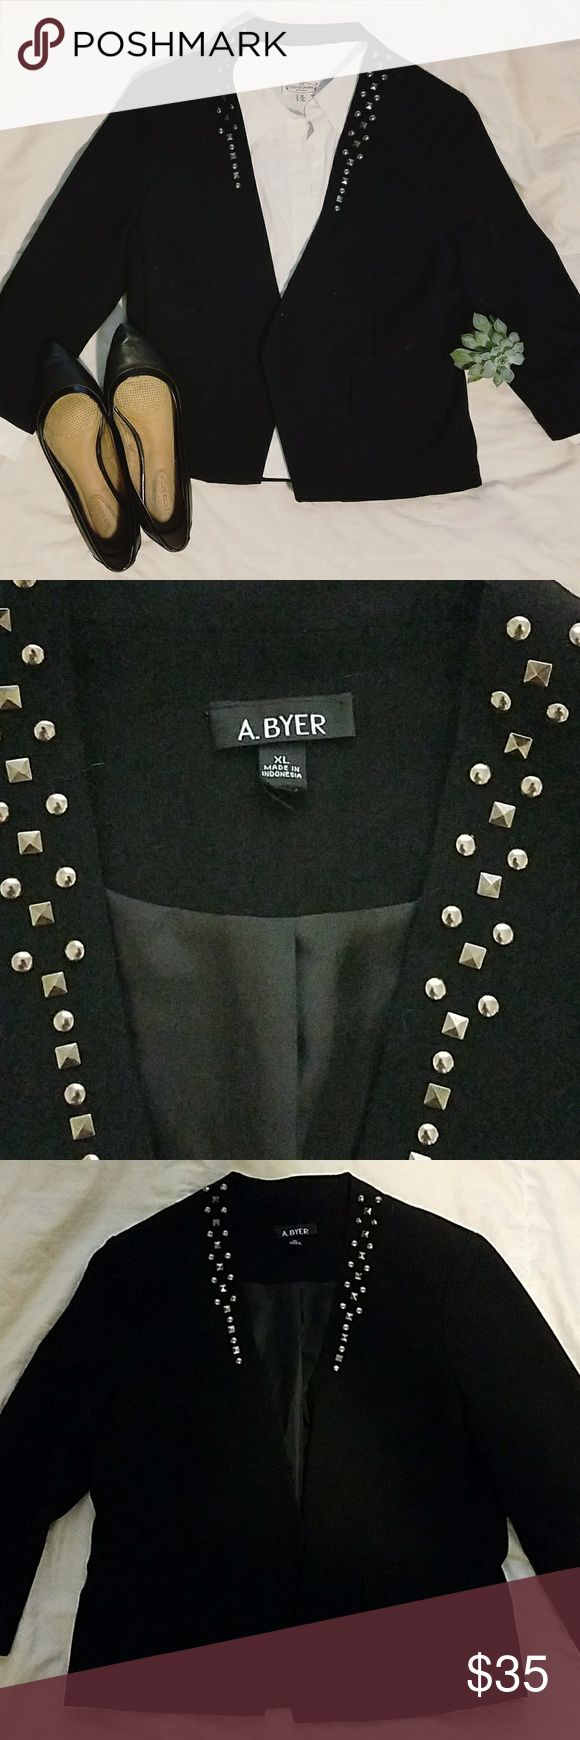 Casual studded black blazer with 3/4 sleeves A cute and casual A. Byer black blazer with silver studs along the collar. The sleeves are 3/4 and are scrunchy. Goes great with a nice pair of dark jeans! Make me an offer. Jackets & Coats Blazers